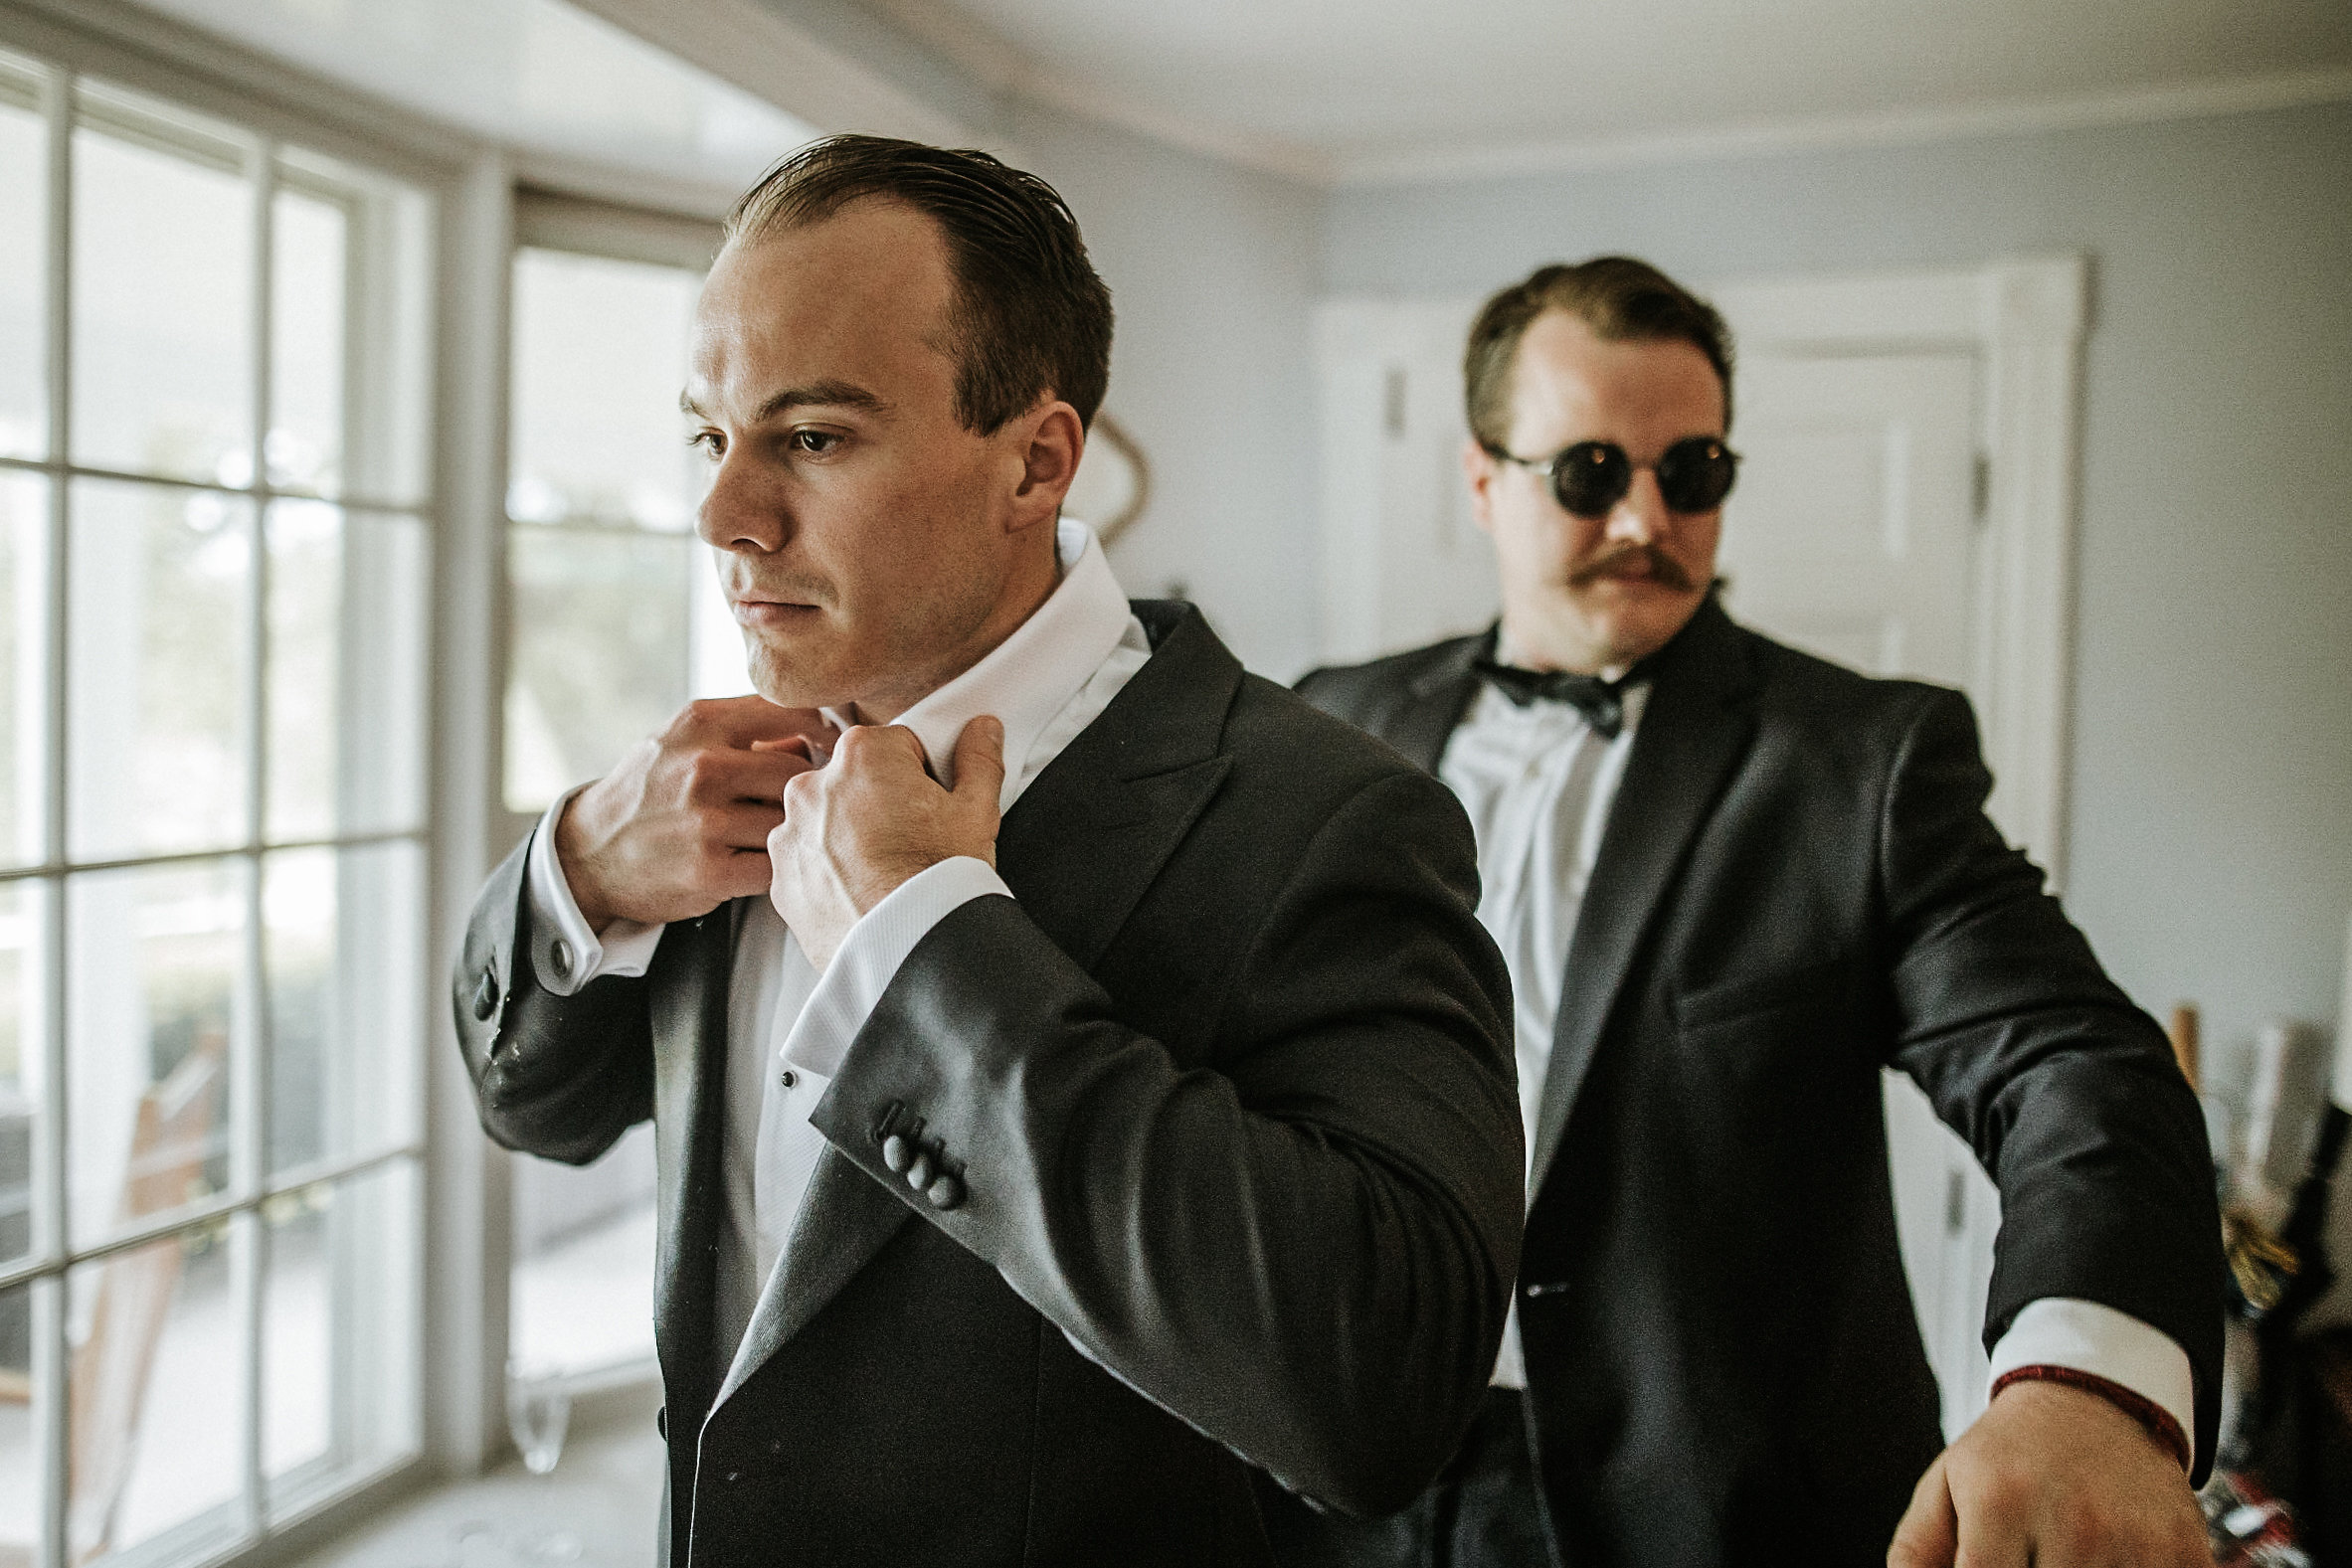 Groom fixing collar